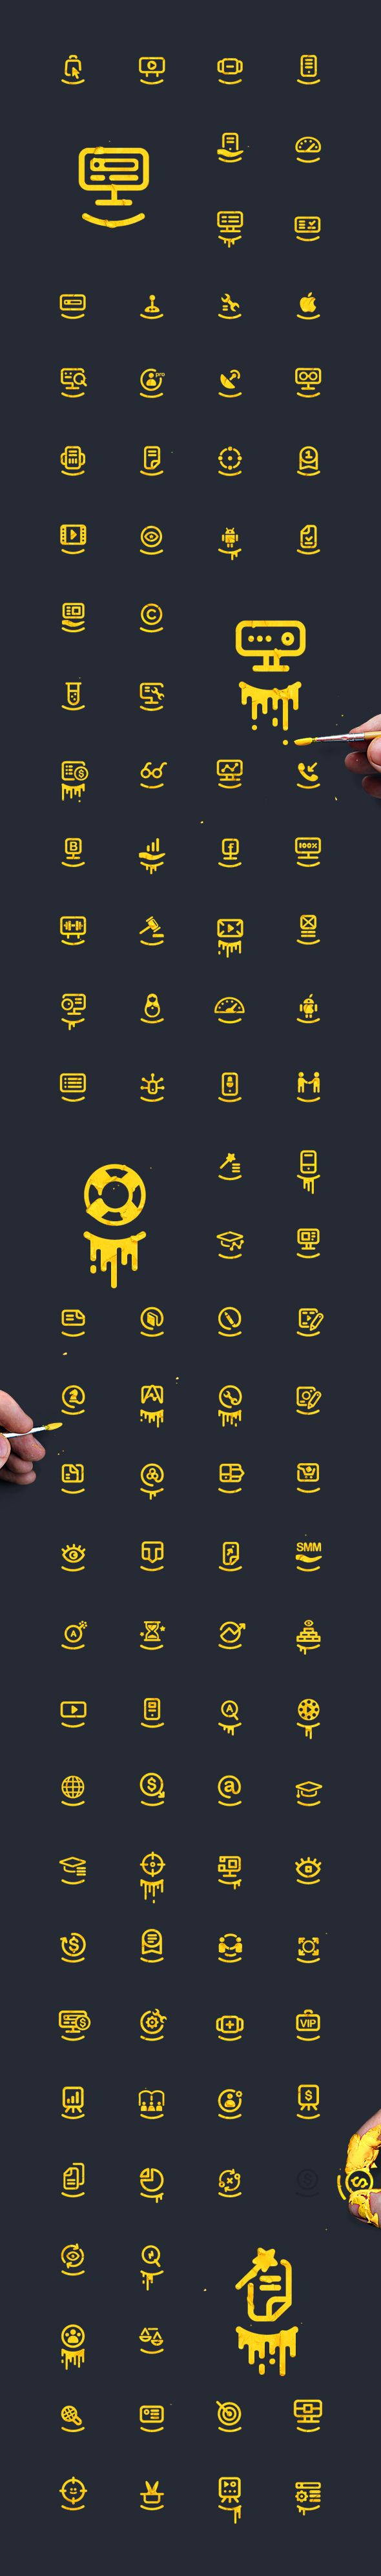 More than a hundred smiling icons on Behance